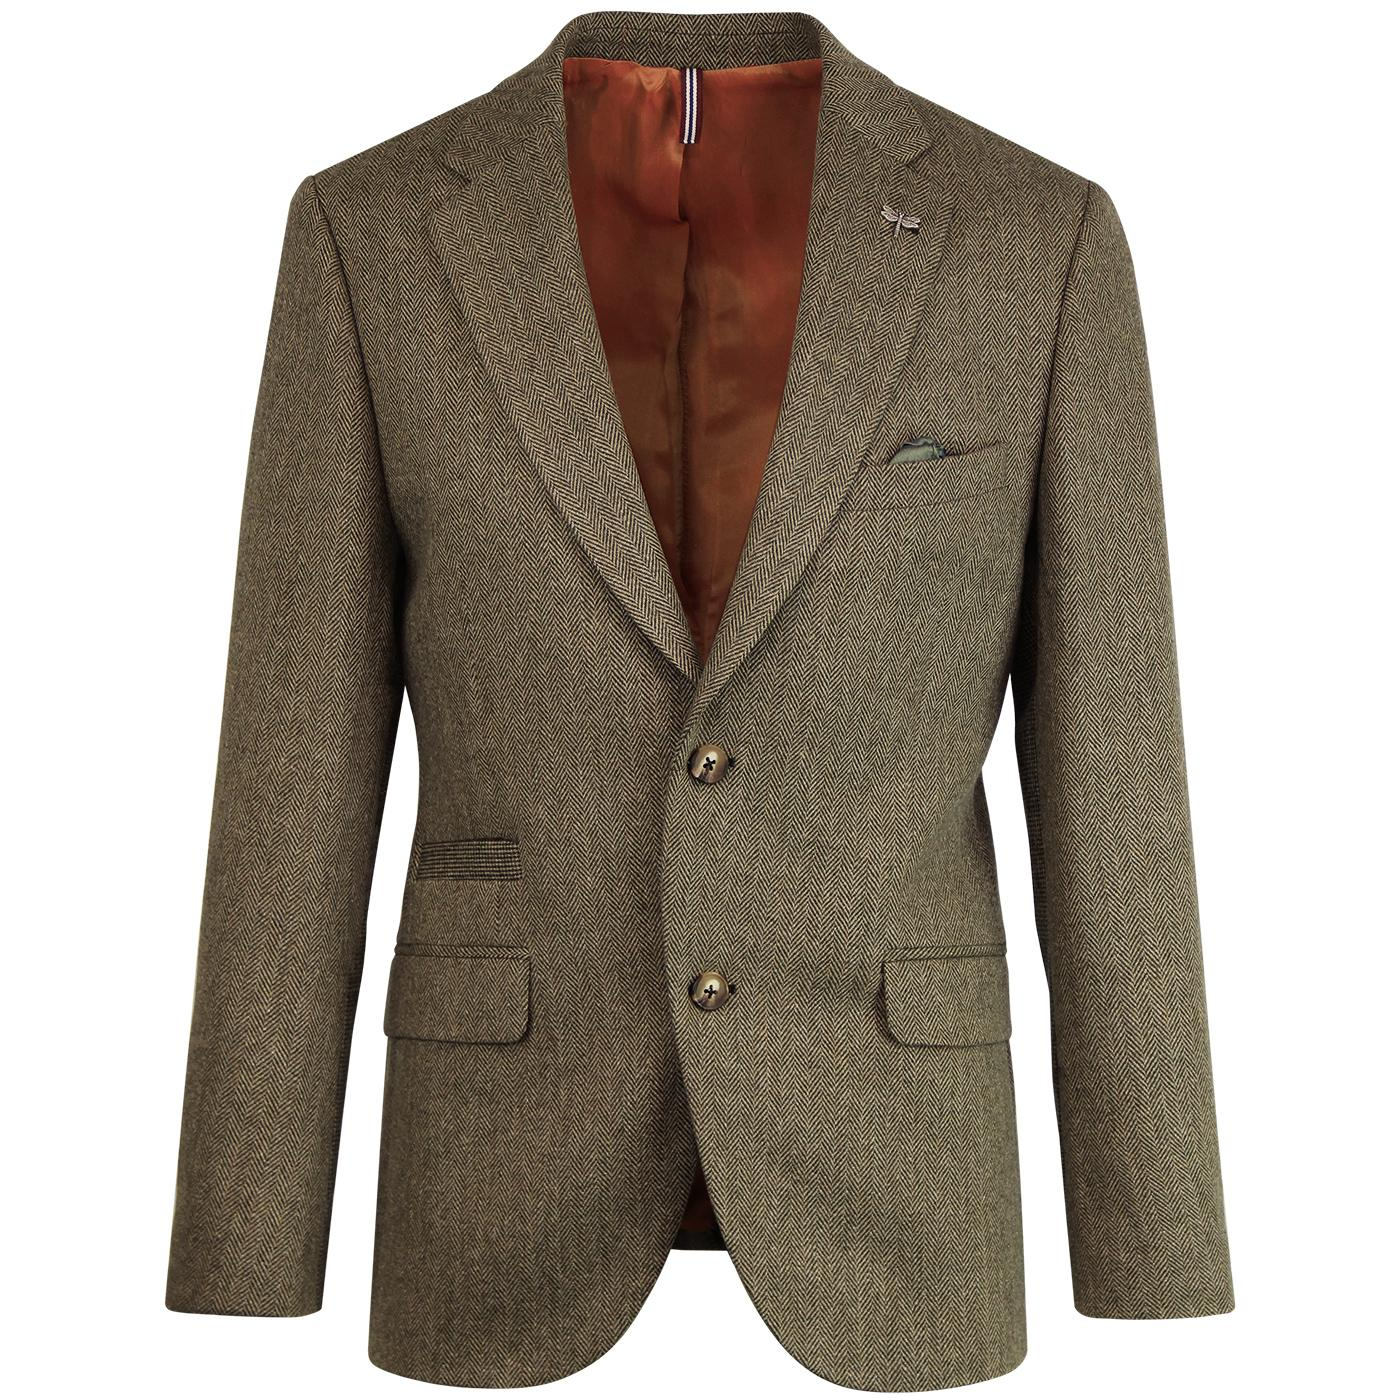 Towergate GIBSON LONDON Mod Herringbone Blazer (F)